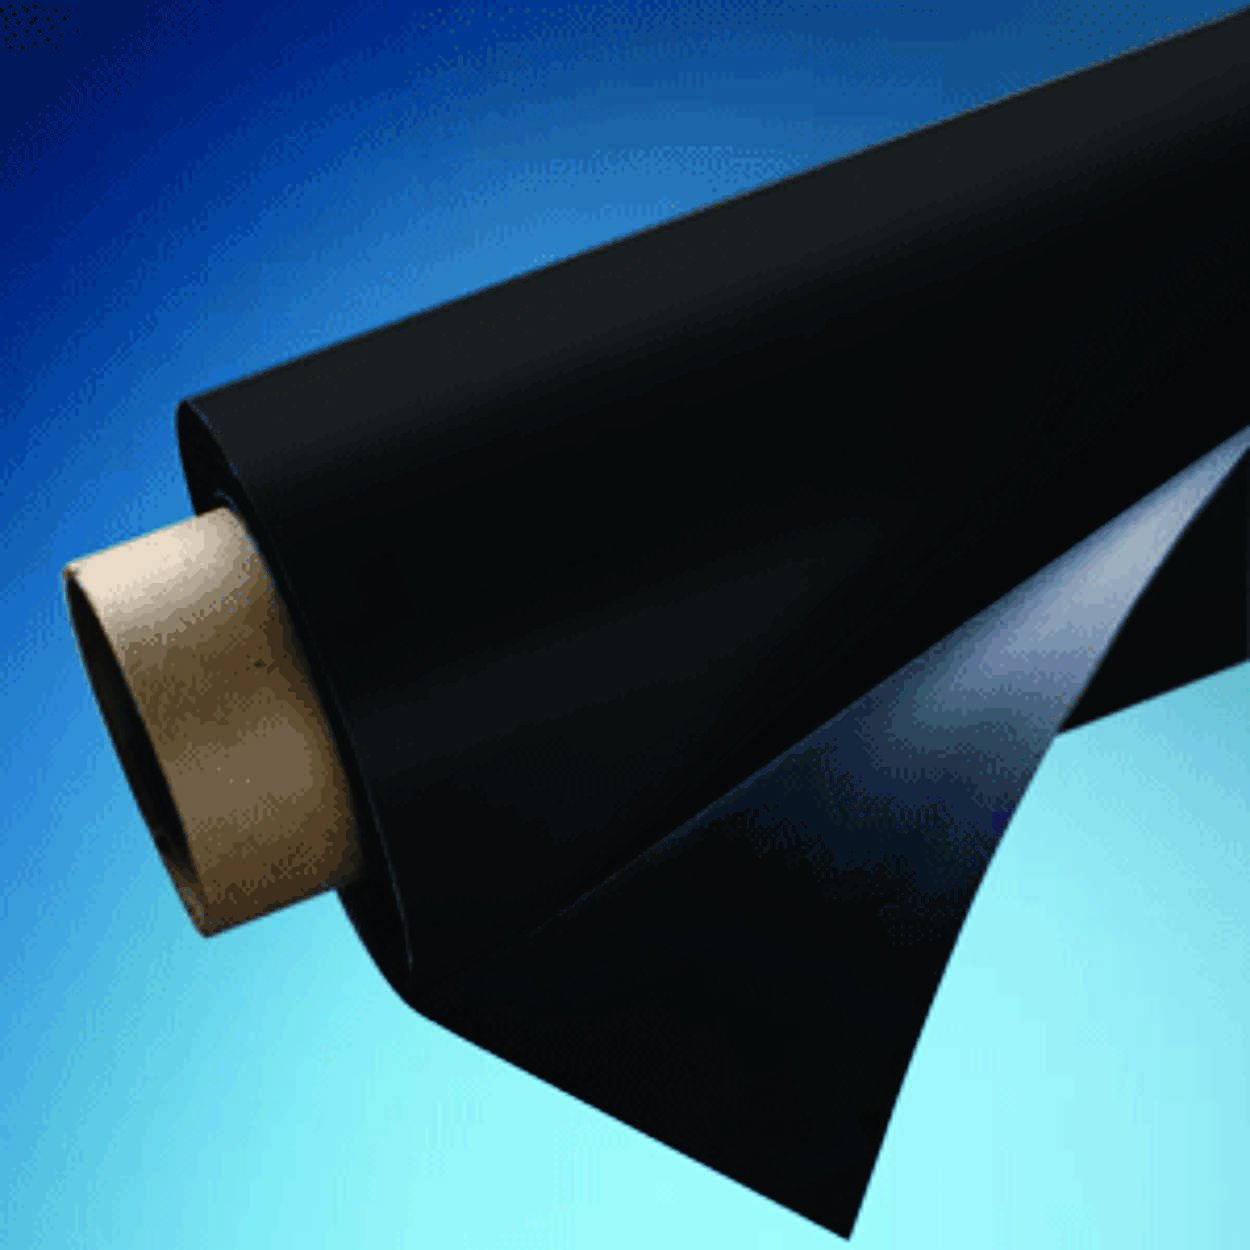 24'' X 5' Roll Magnetic Sheeting - Black Vinyl by Pro Mag by Magnum Magnetics